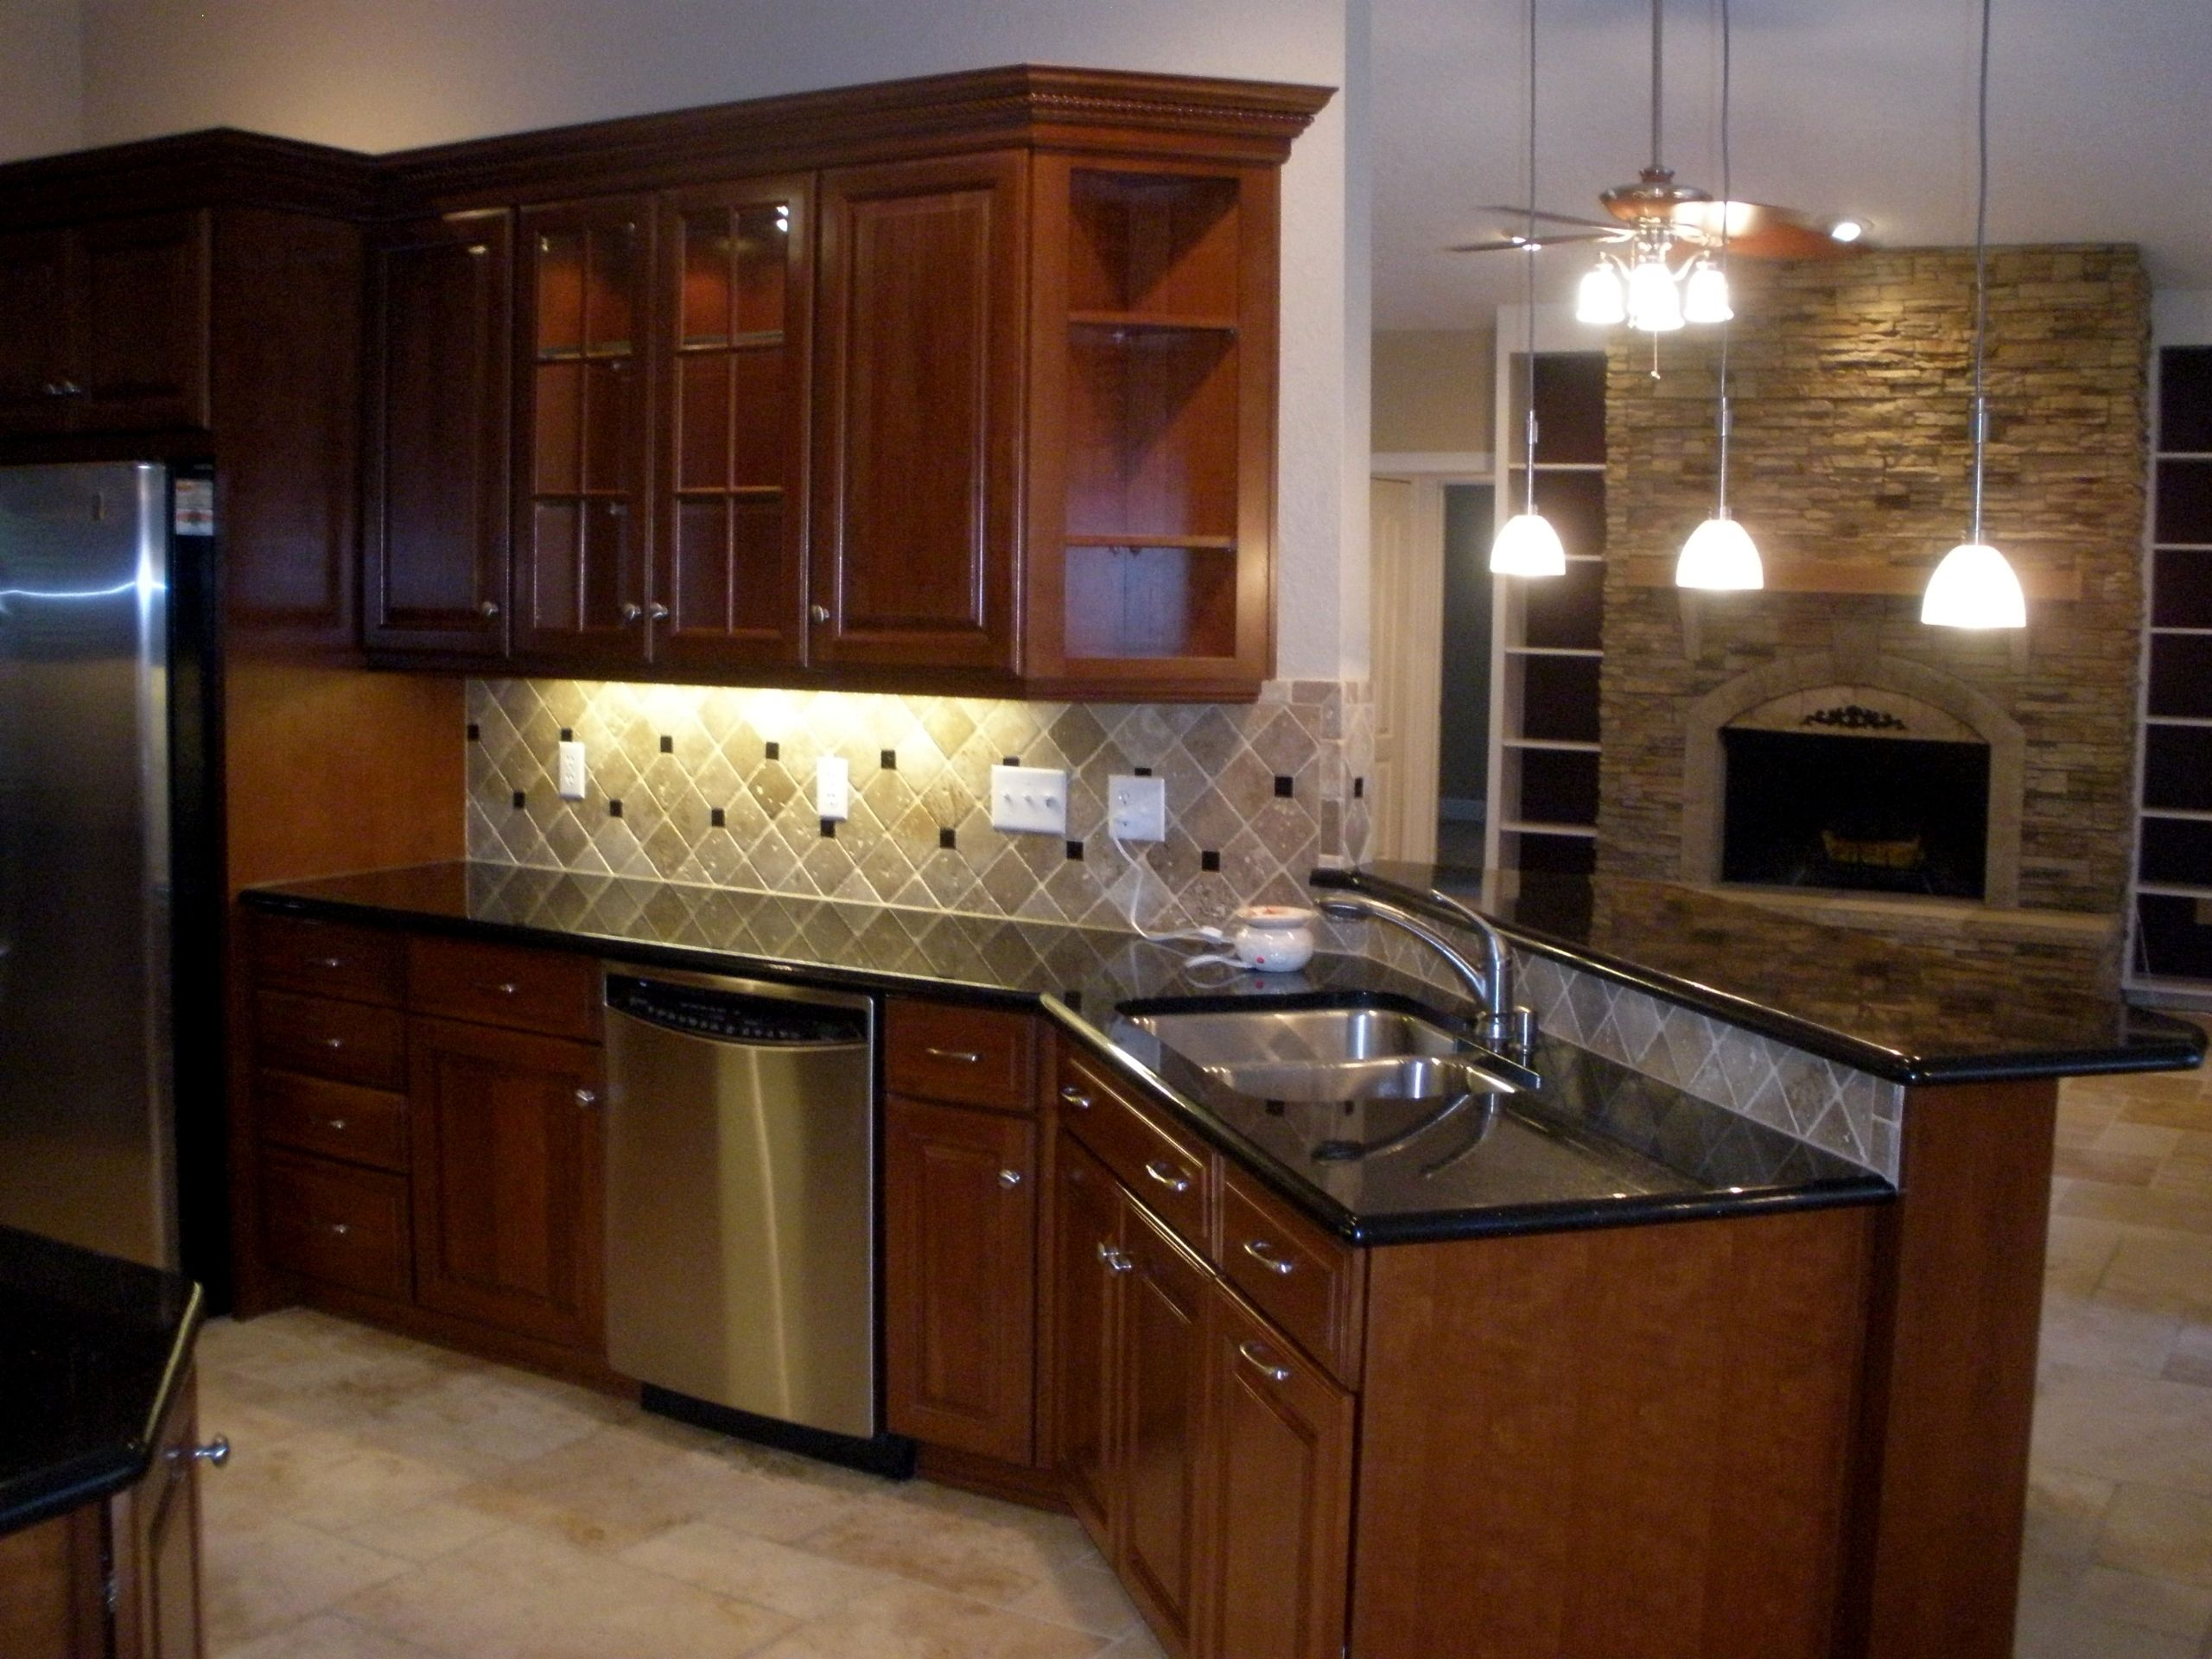 Cherry wood cabinets with granite counter top | Real Estate | Pinterest